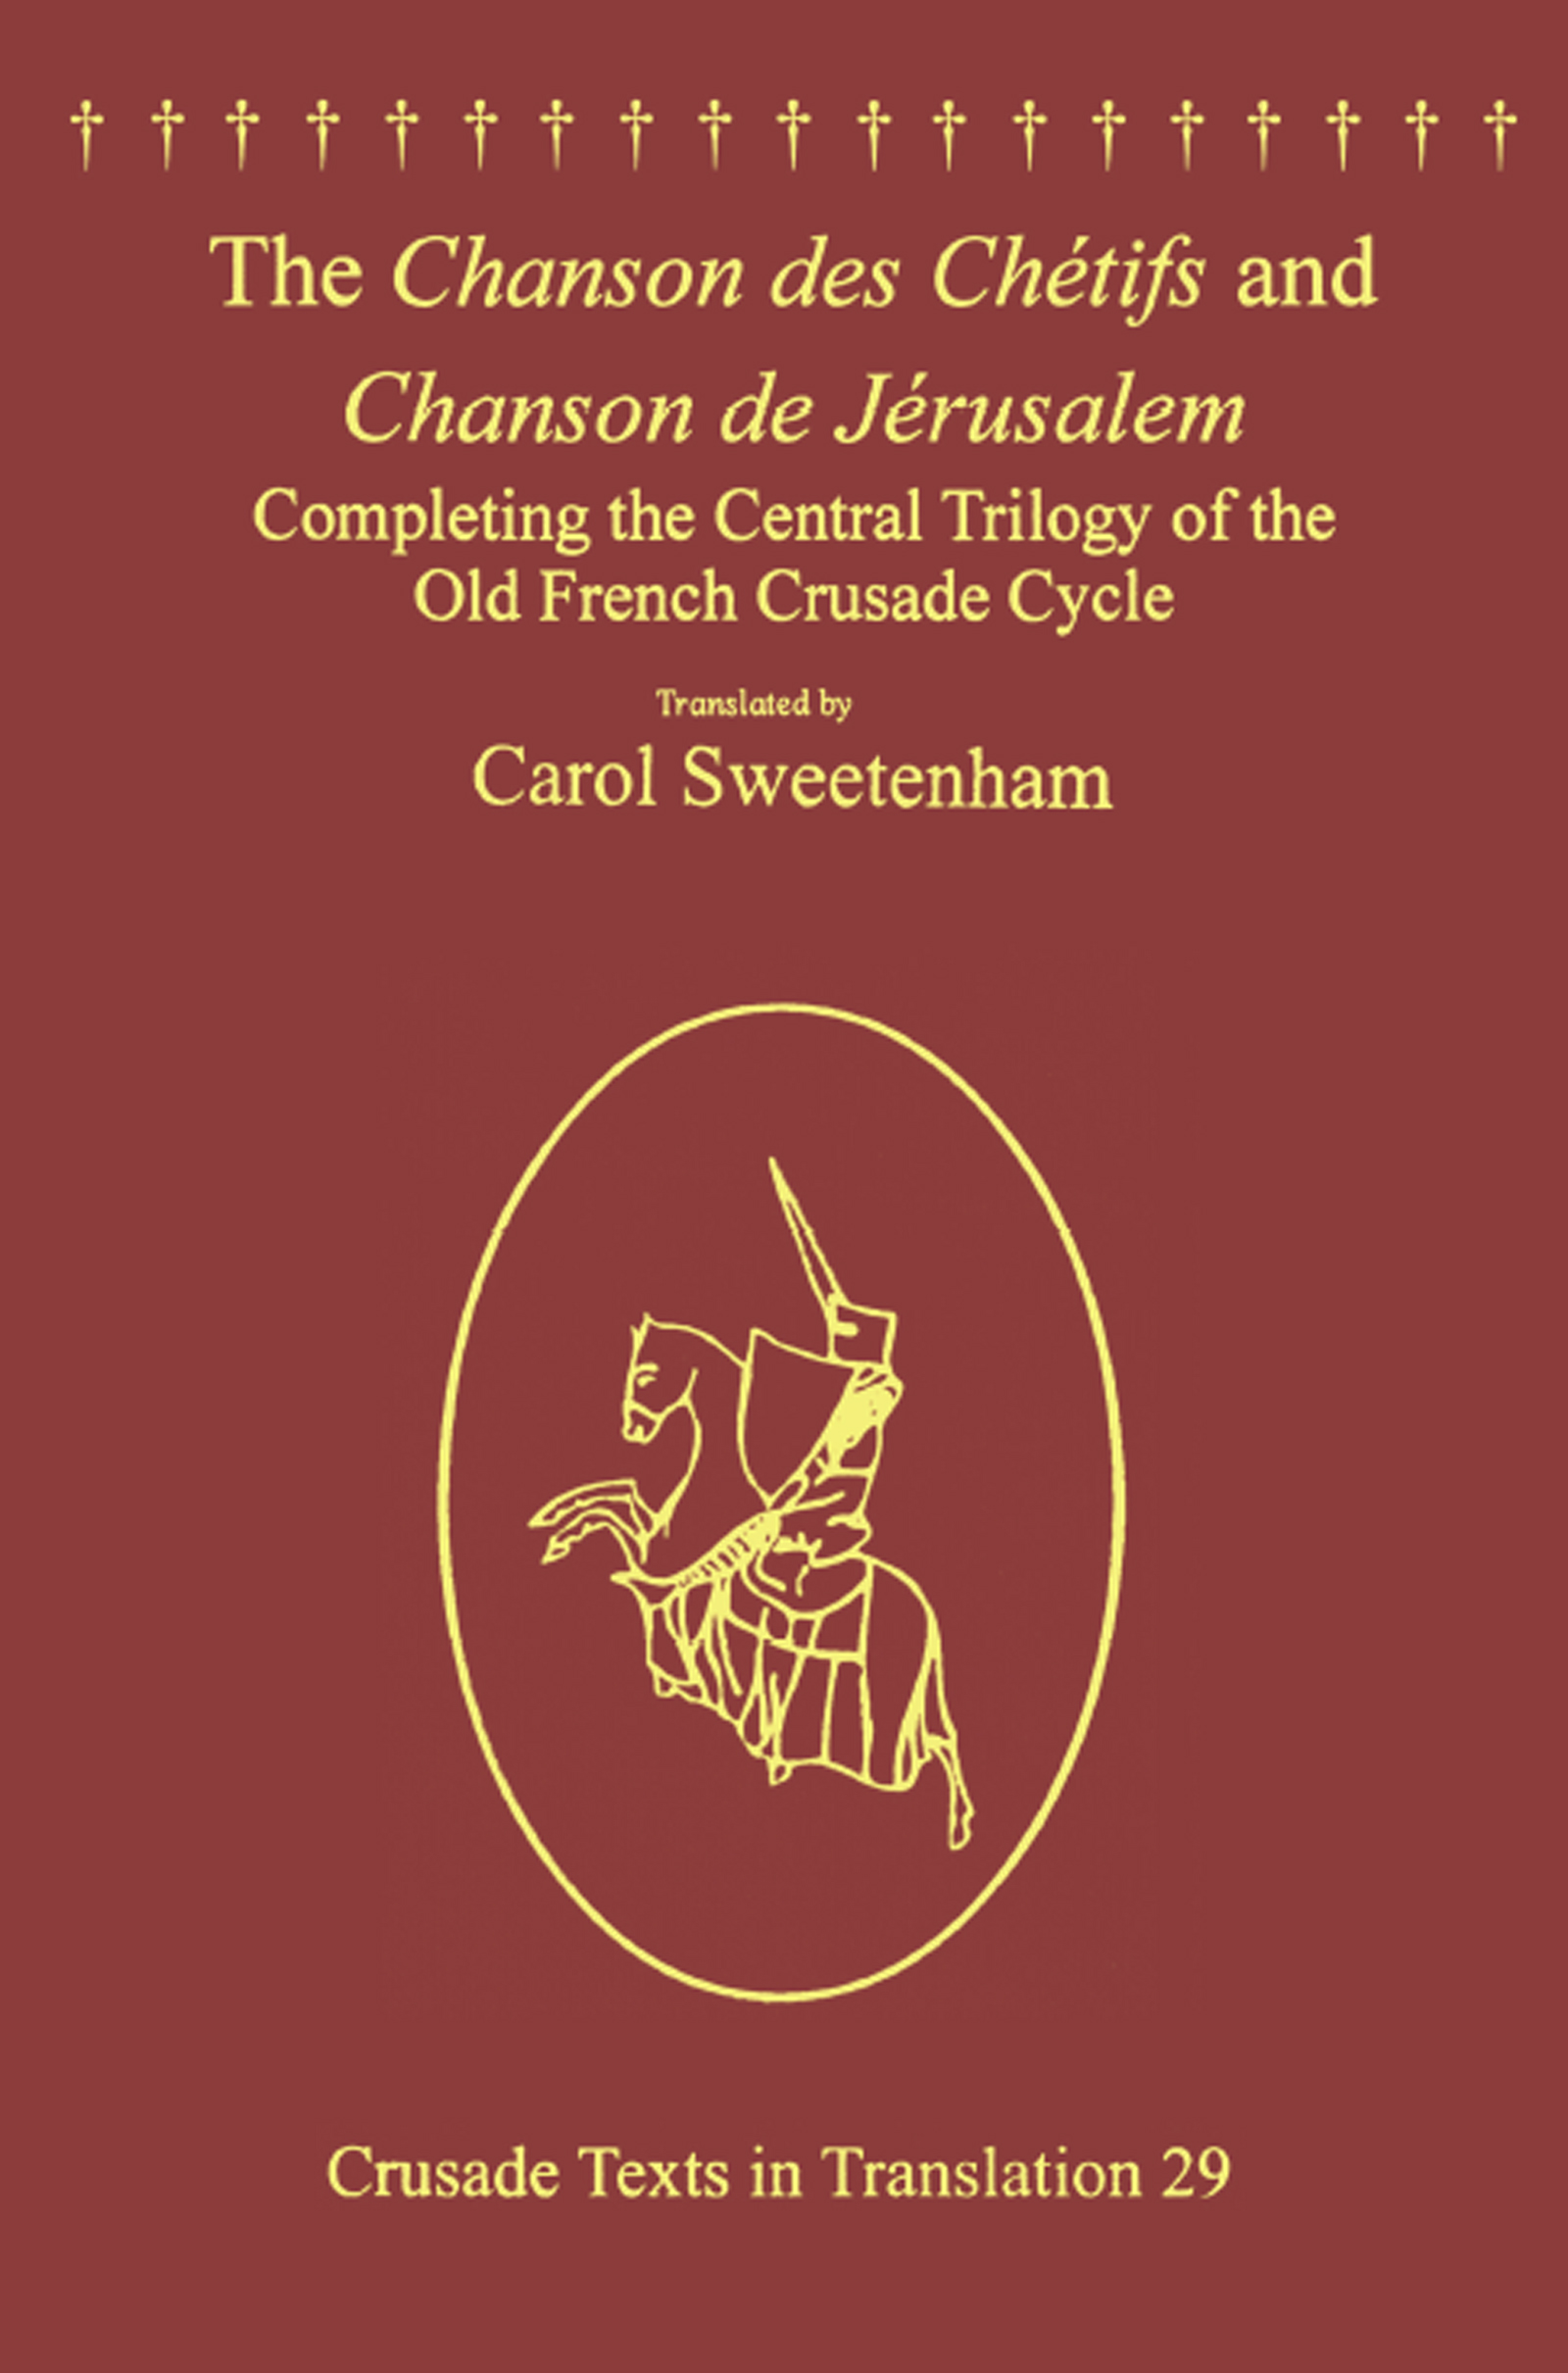 The Chanson des Chétifs and Chanson de Jérusalem: Completing the Central Trilogy of the Old French Crusade Cycle, 1st Edition (Hardback) book cover